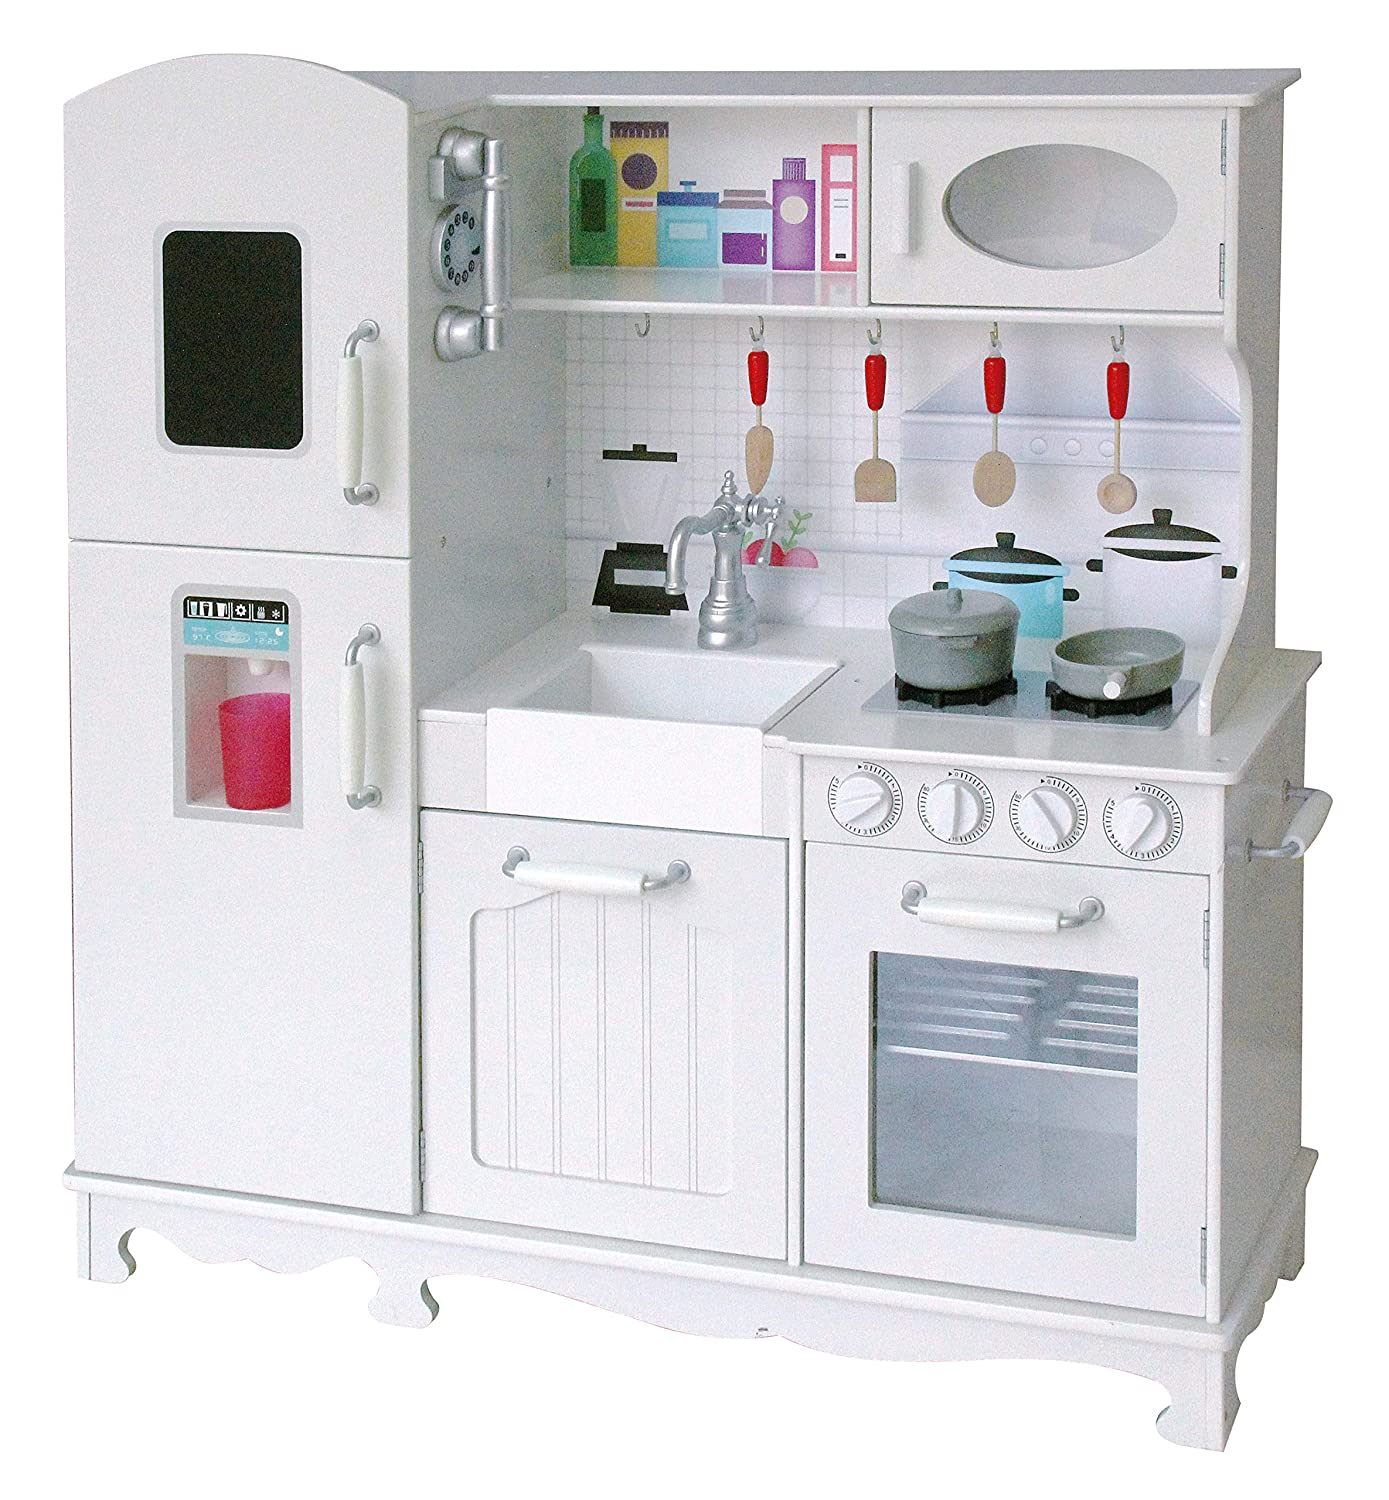 Rainbow Sophia Timeless Wood Kids Play Kitchen, Toddler Pretend Play Set with Ice Maker, Stove, Oven and Sounded Knobs